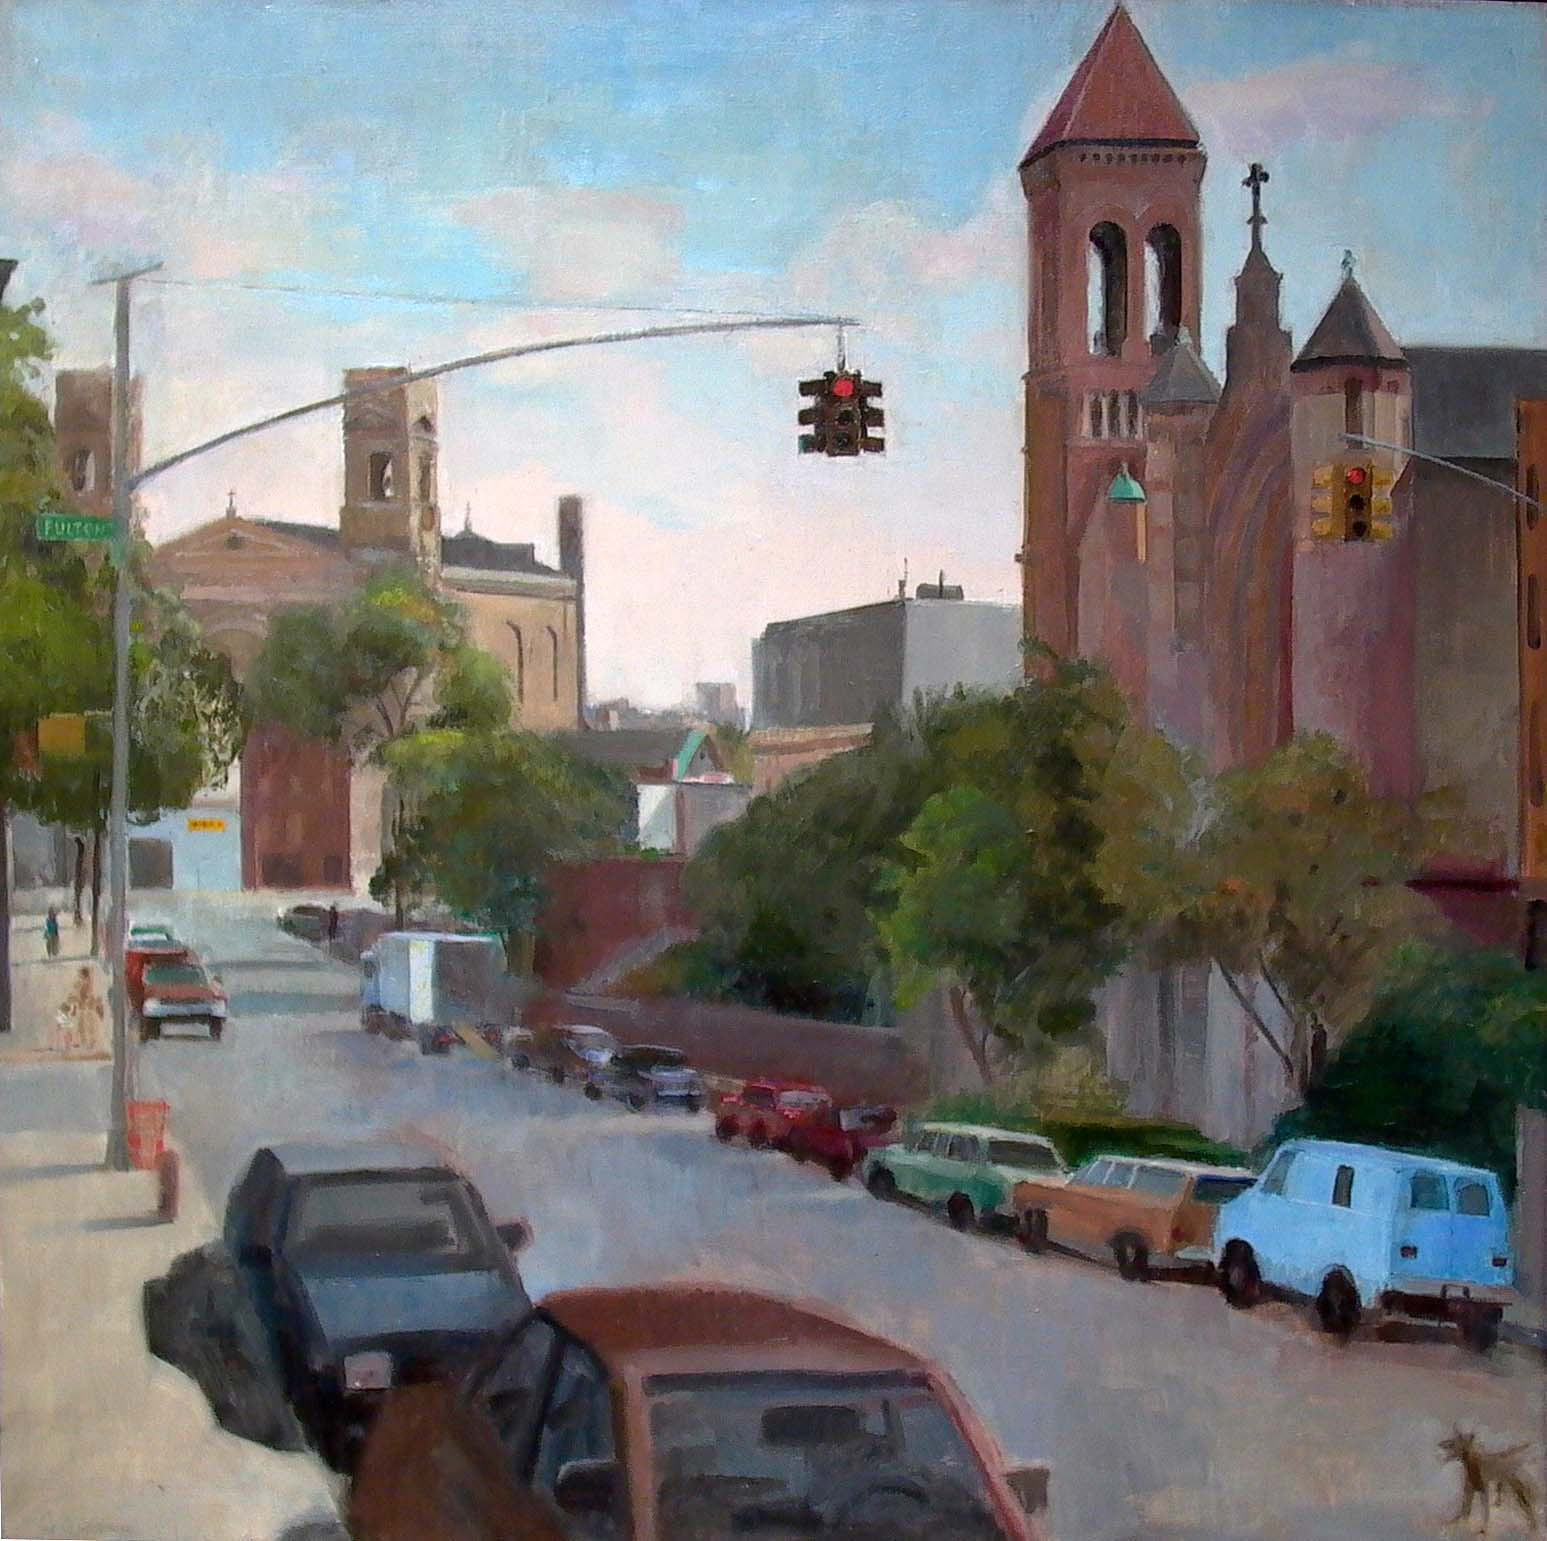 Fulton & Clinton Streets, oil on linen, 37 x 37 inches